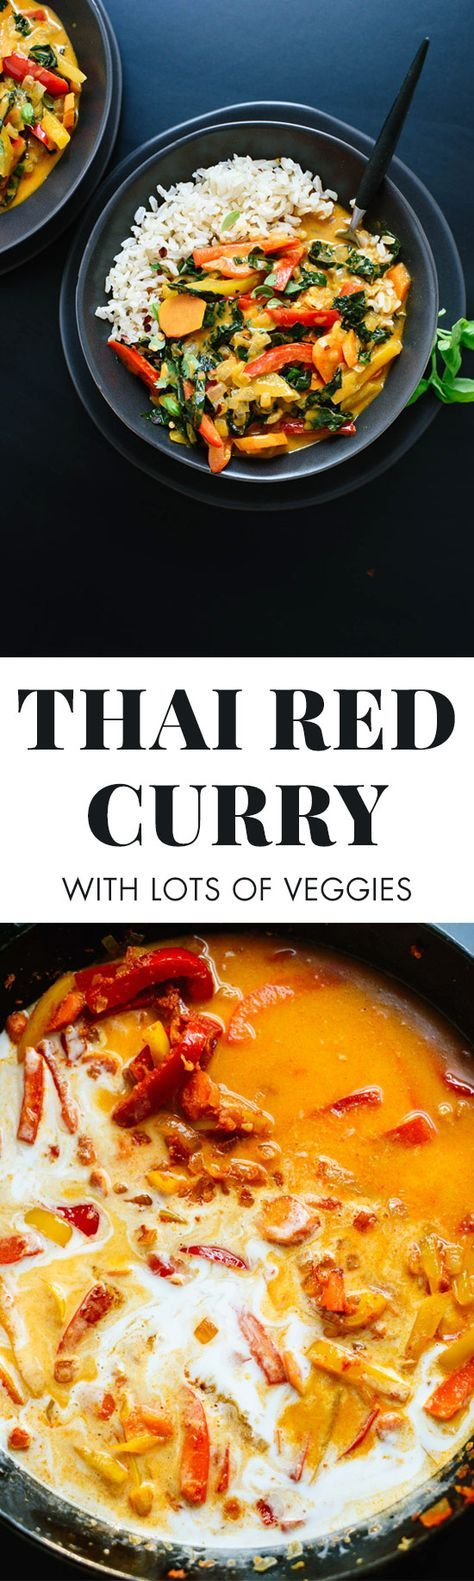 This veggie-packed red Thai curry recipe is just as good as your favorite Thai restaurant's! You're going to love it. Vegan and gluten free. http://cookieandkate.com